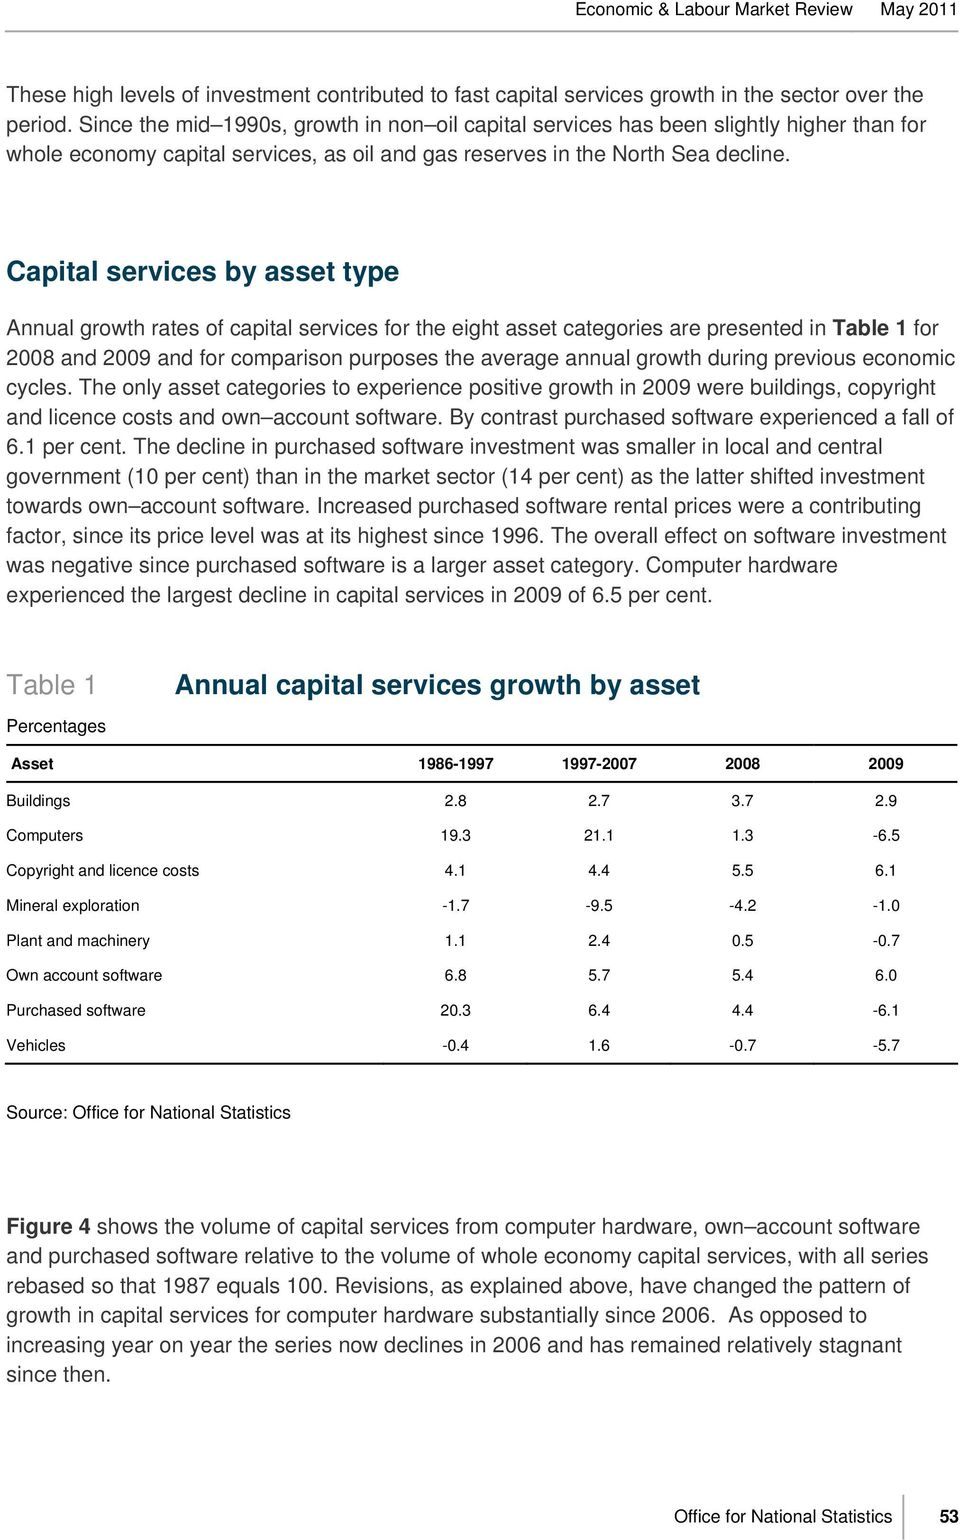 Capital services by asset type Annual growth rates of capital services for the eight asset categories are presented in Table 1 for 2008 and 2009 and for comparison purposes the average annual growth